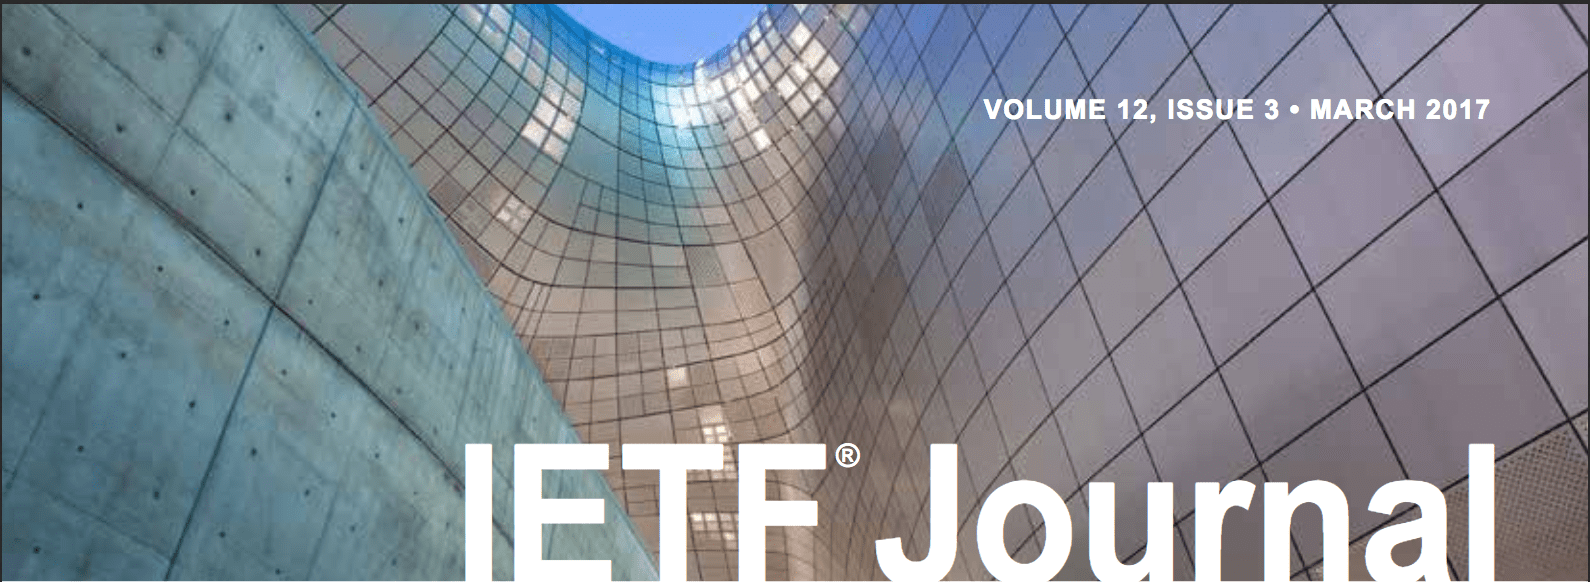 IETF Journal Volume 12, Issue 3 Now Online Thumbnail